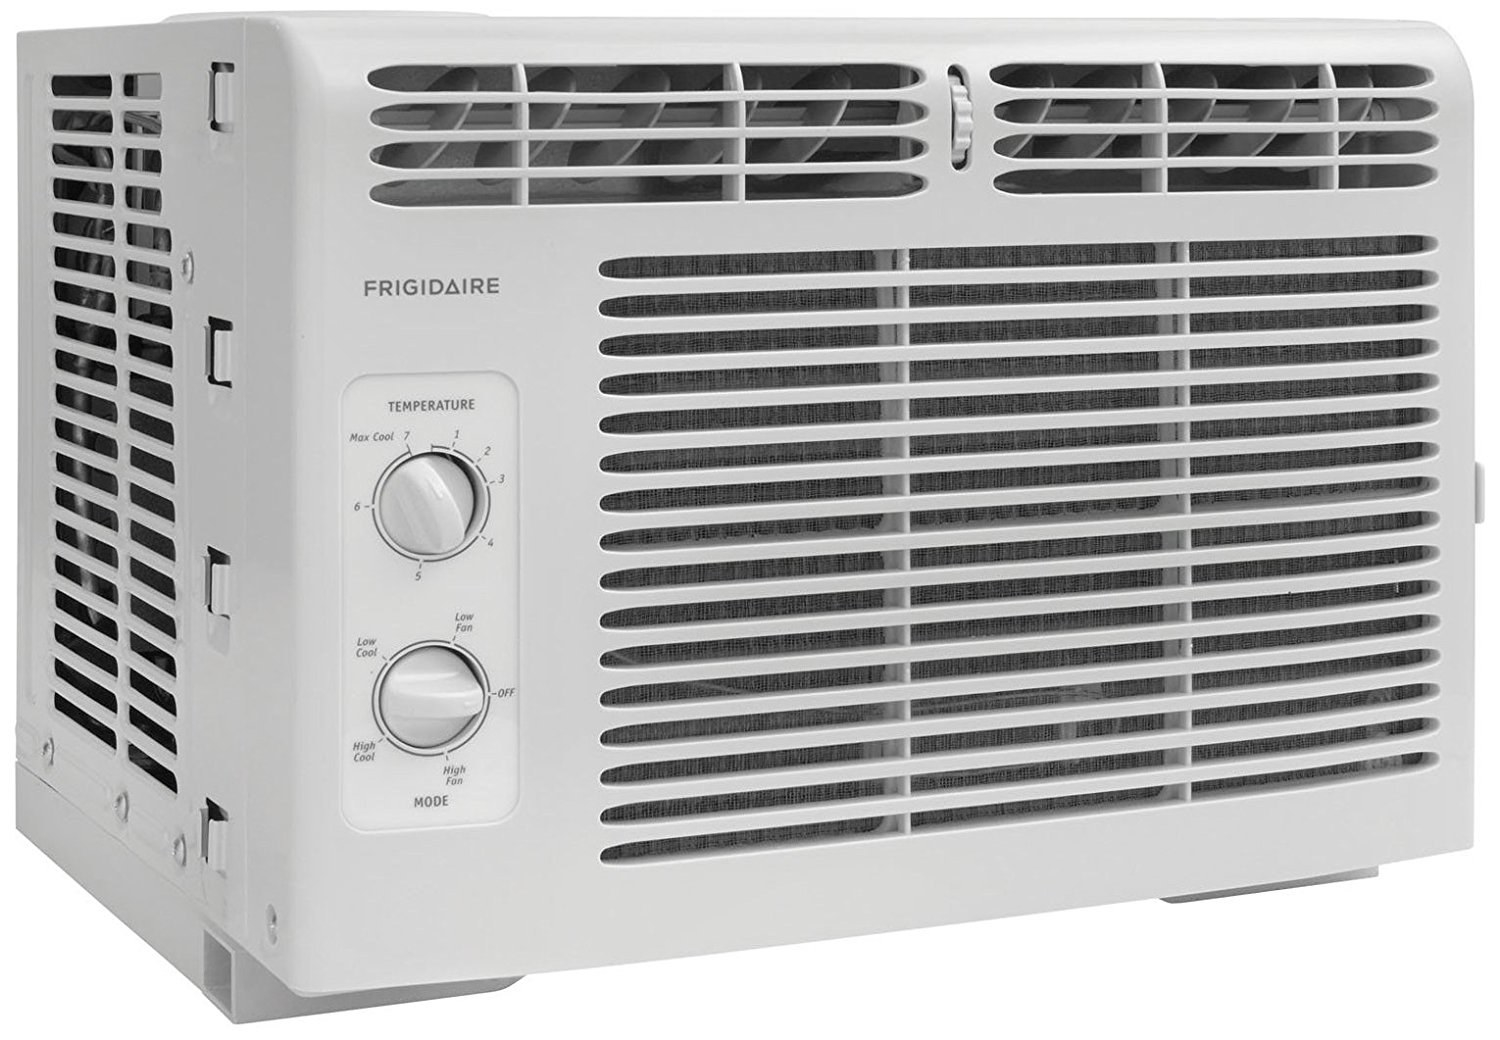 Frigidaire mini window AC